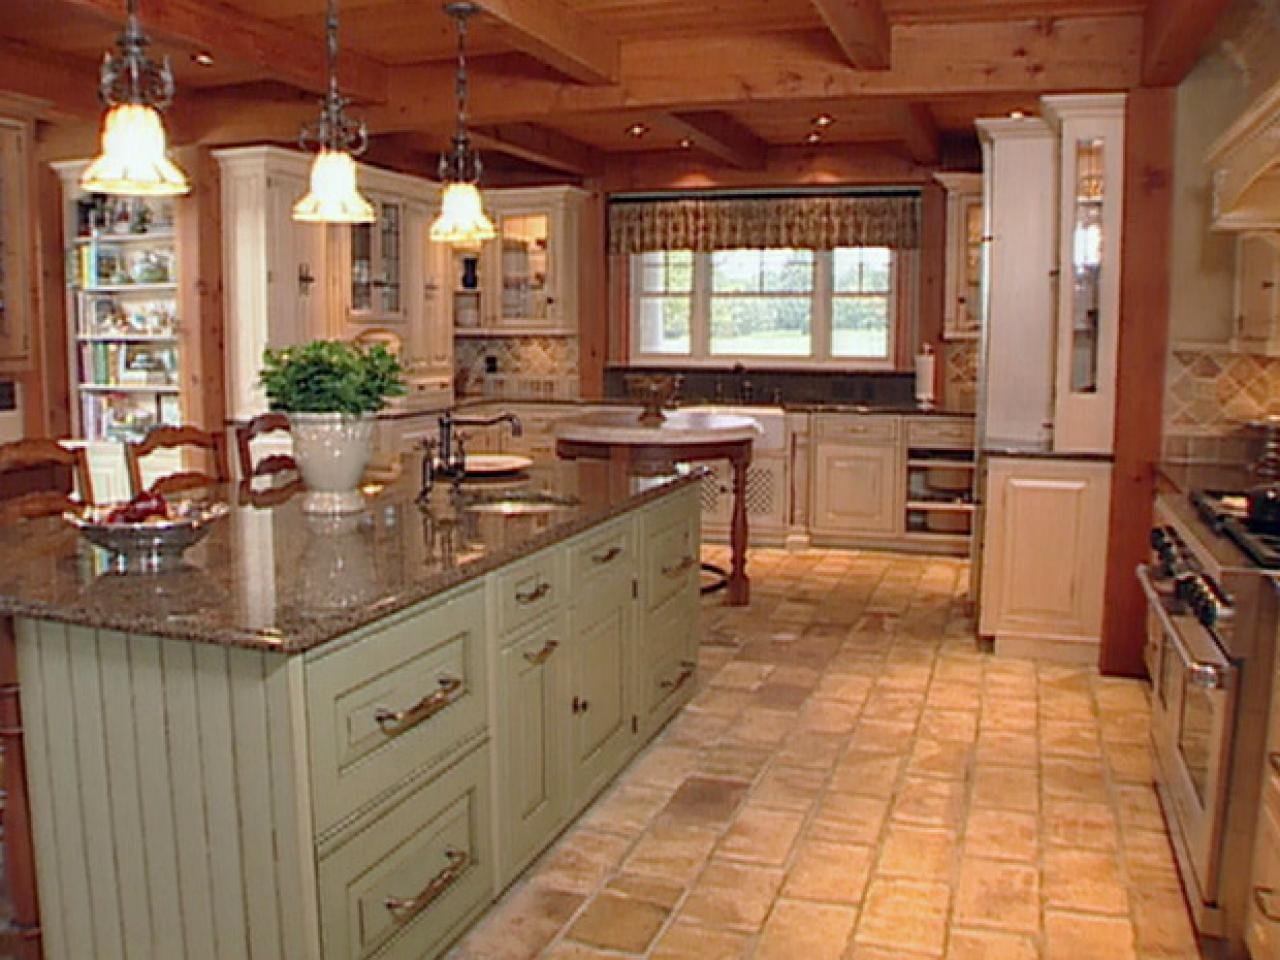 Natural Materials Create FarmhouseKitchen Design HGTV - Farmhouse style kitchen islands